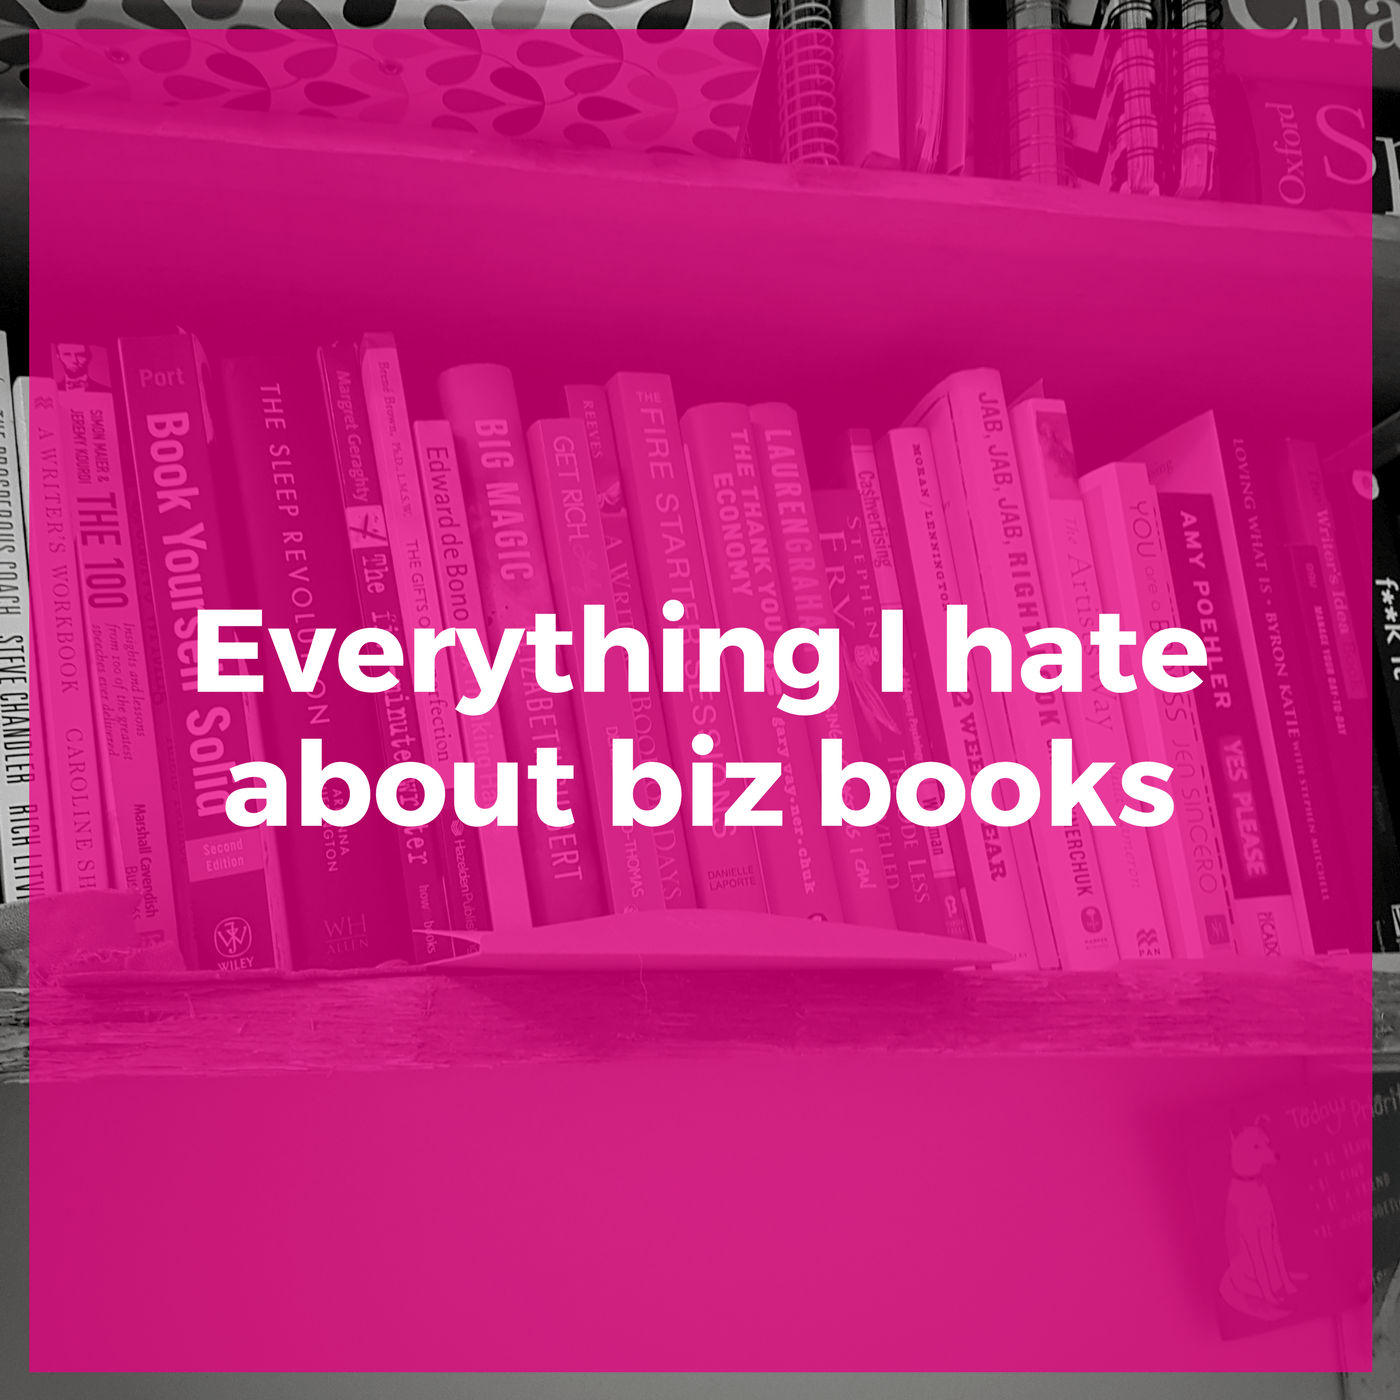 Everything I hate about biz books